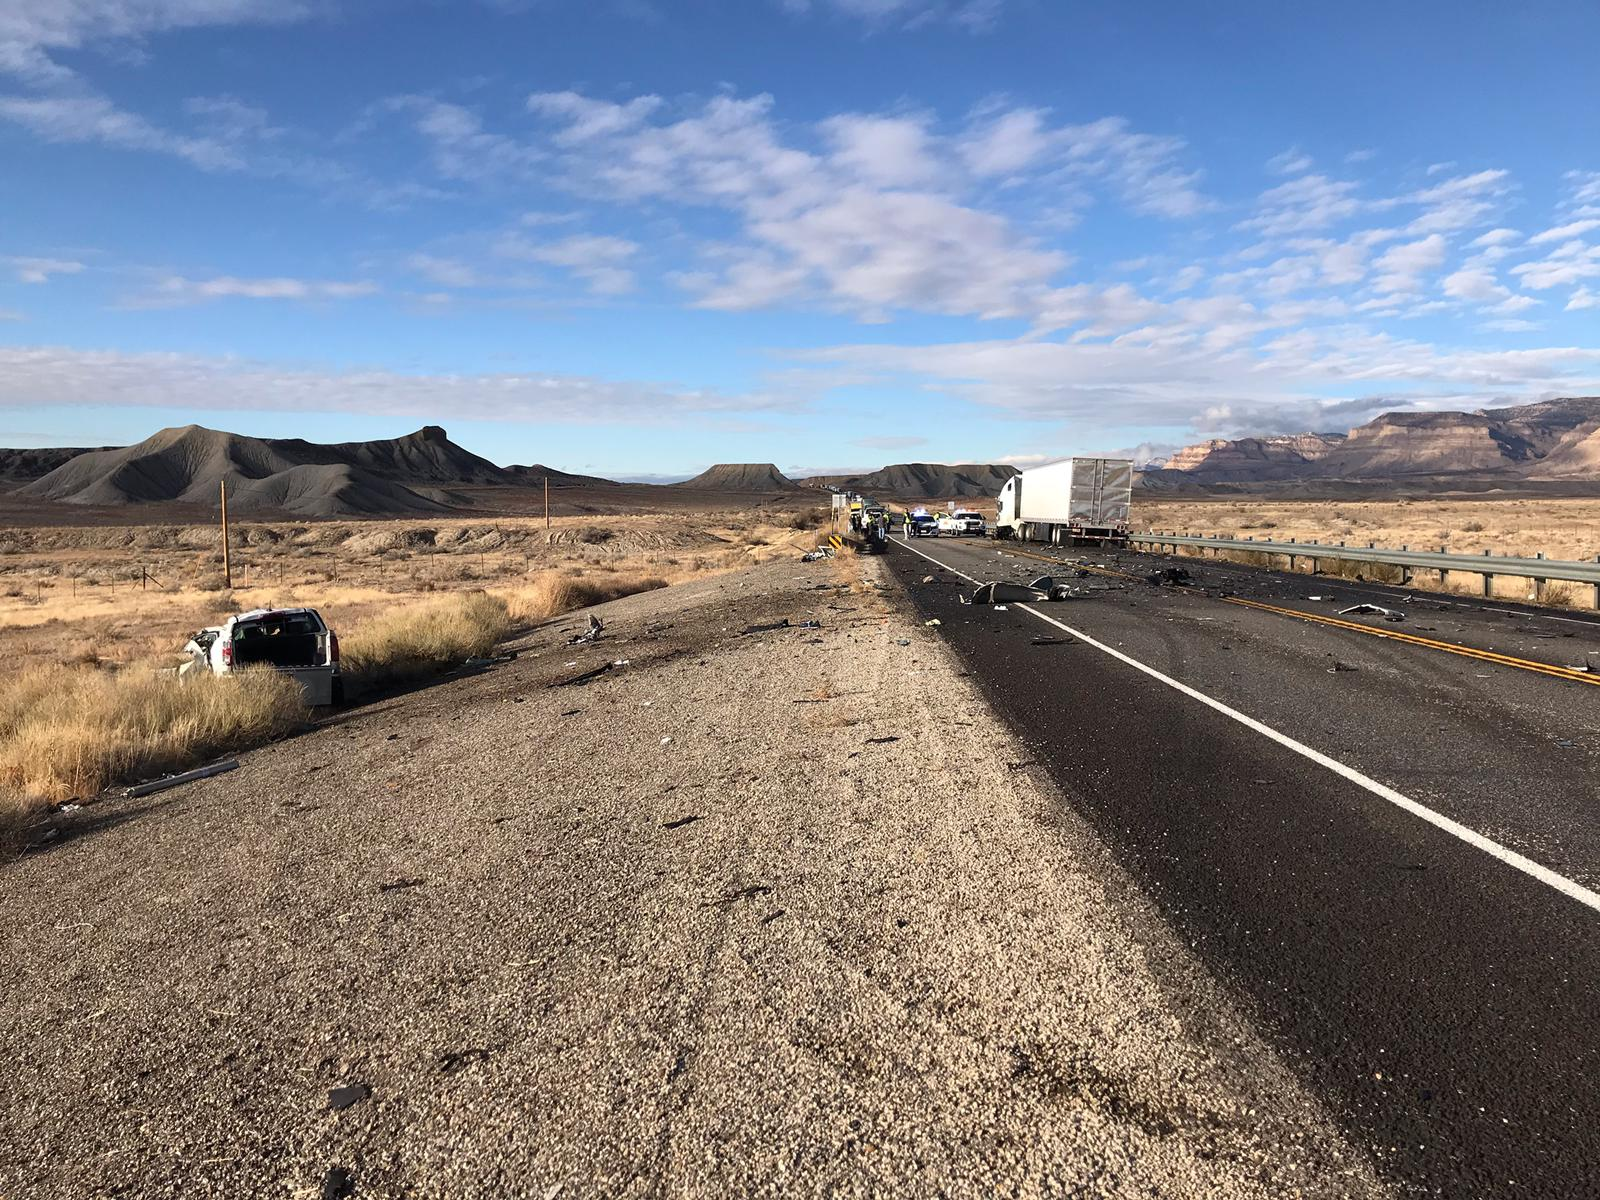 A man was killed in a head-on collision between a pickup truck and a semitractor-trailer on U.S. 6 between Price and Green River on Wednesday, Dec. 11, 2019.